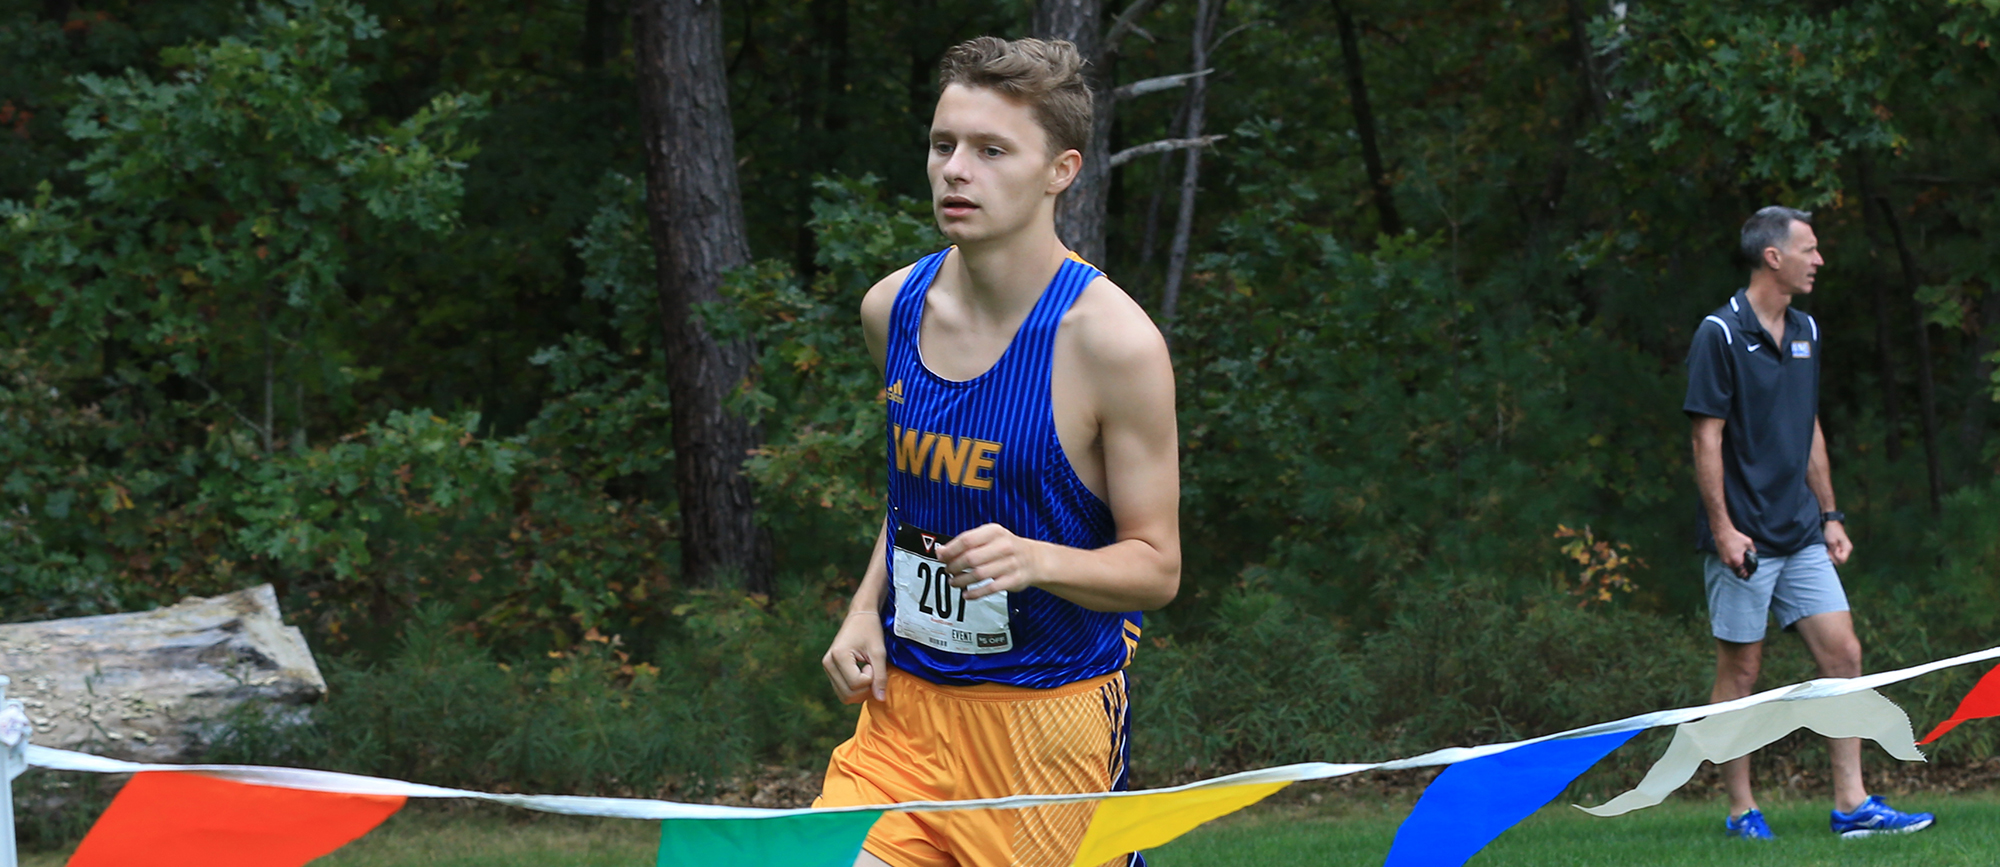 Adam Monroe finished 12th overall as the Golden Bears won the team title at the Elms Blazer Classic on Saturday. (Photo by Doug Steinbock)